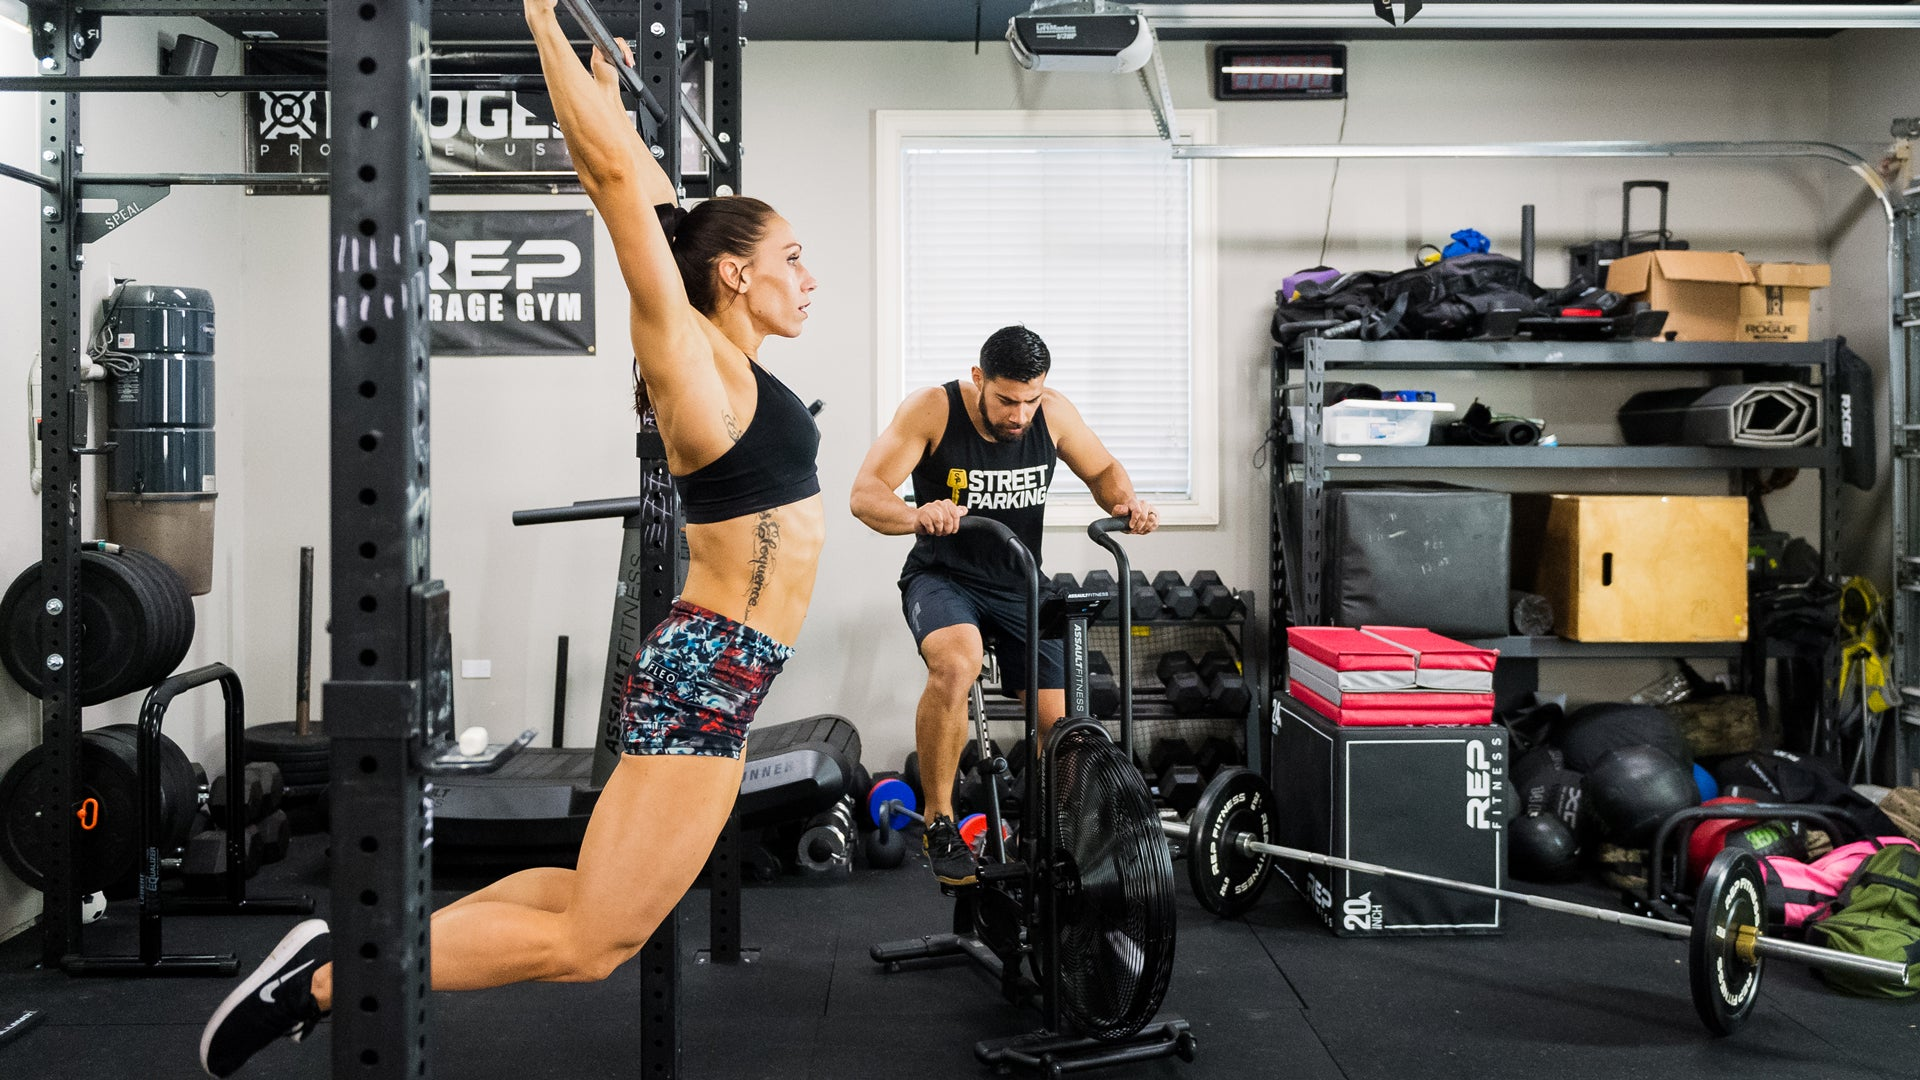 From garage gym to a thriving personalized fitness facility opex